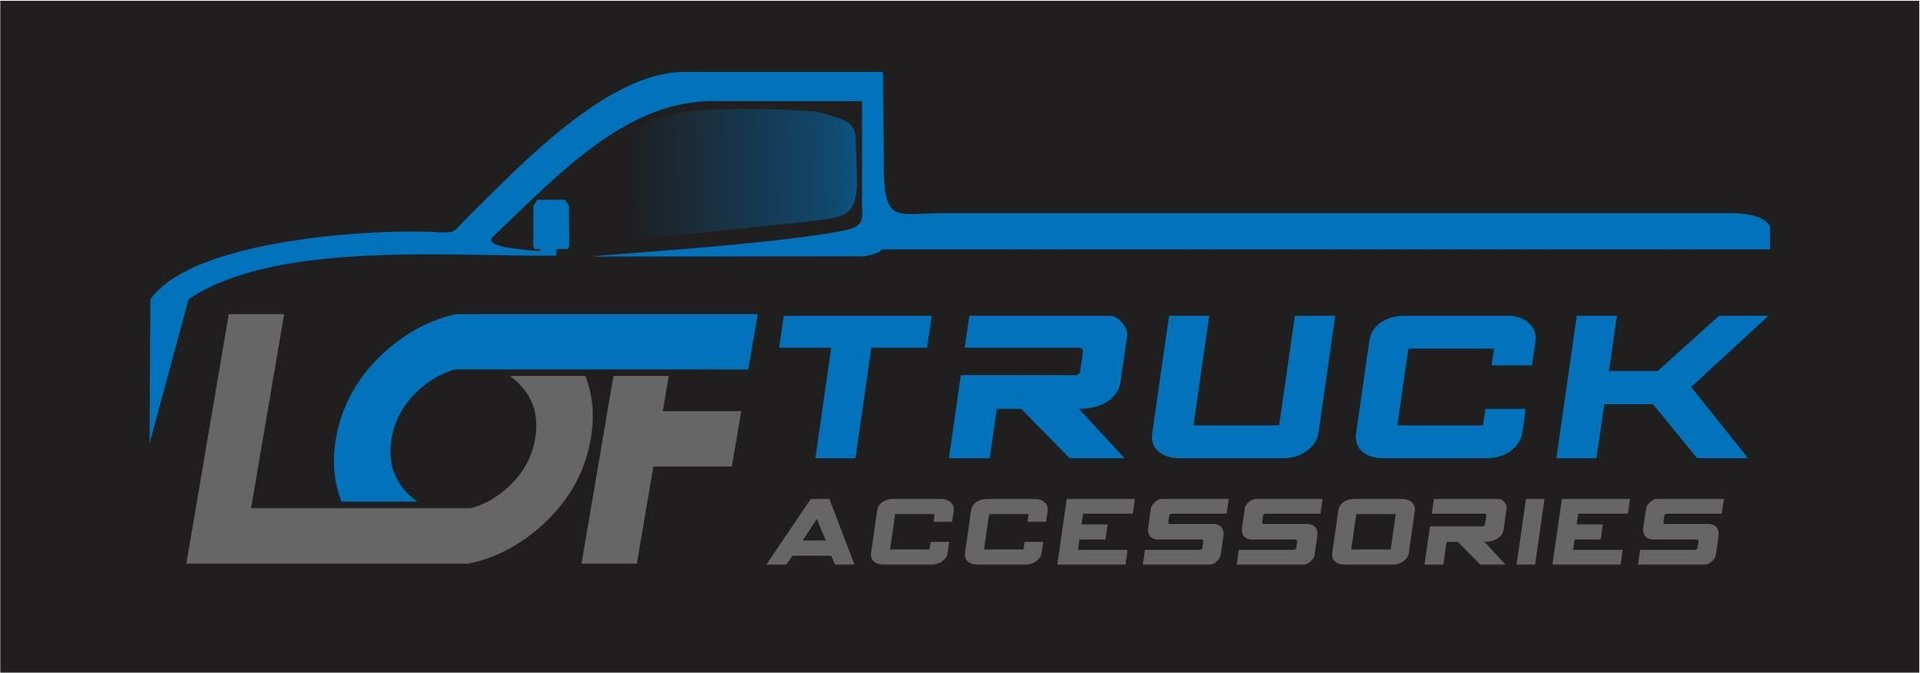 Lot O' Fun Truck Accessories - Logo